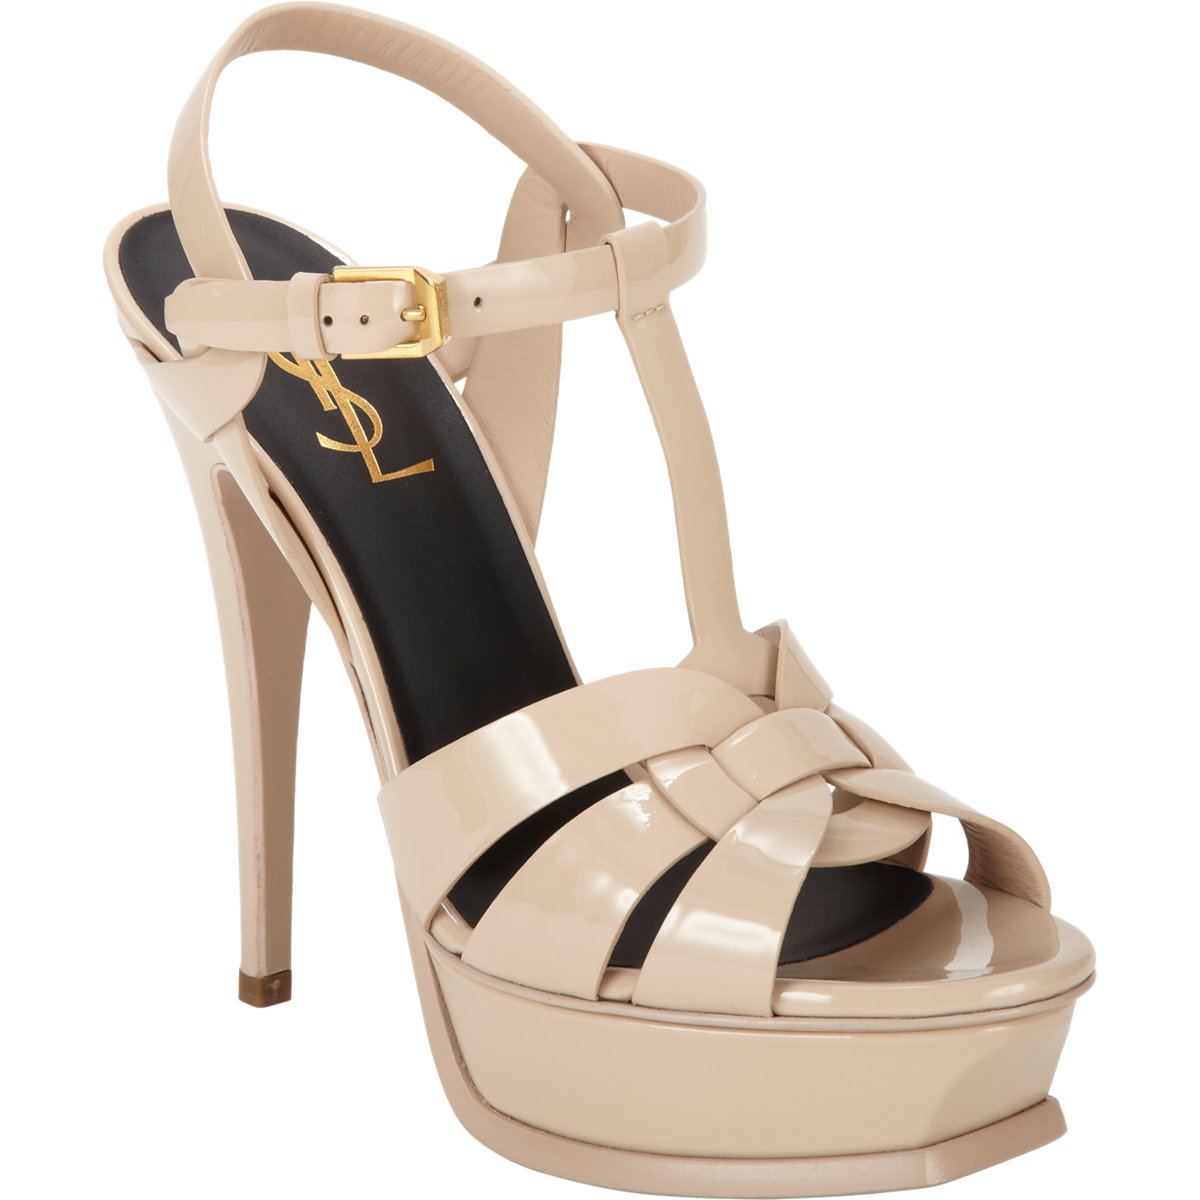 6337a0cc67a Saint Laurent's Tribute sandals – and the Tribtoo too | High Heels Daily